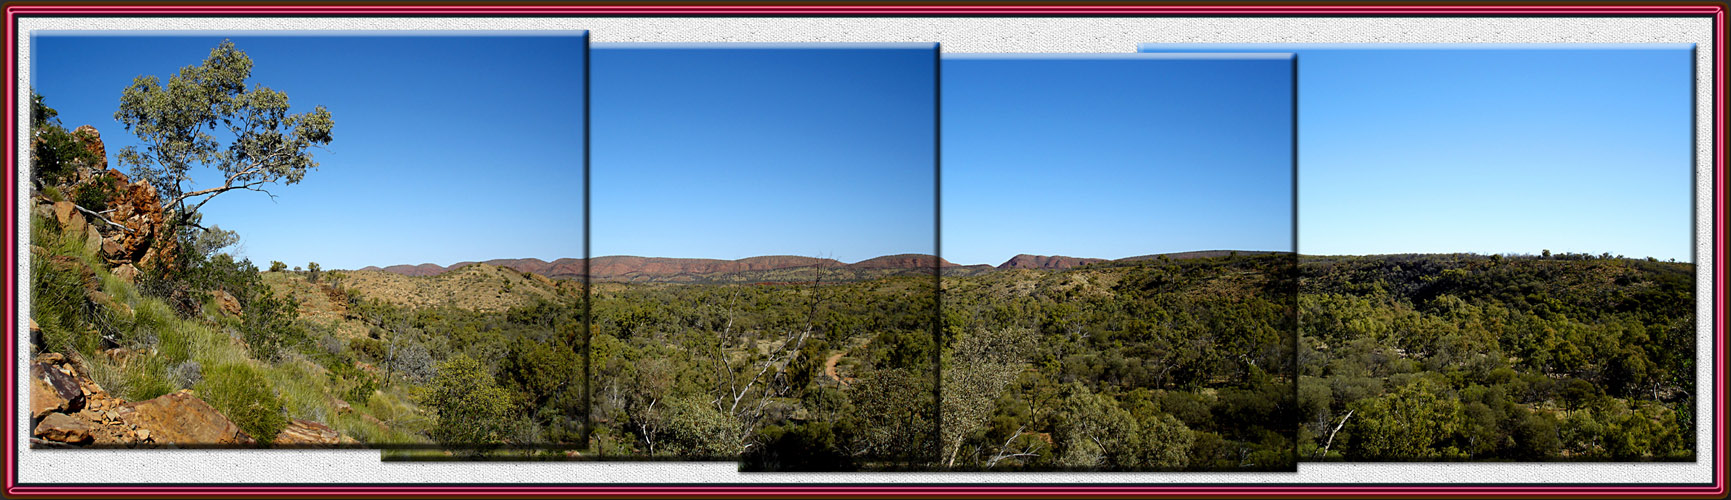 Serpentine Gorge, Sequence, reload